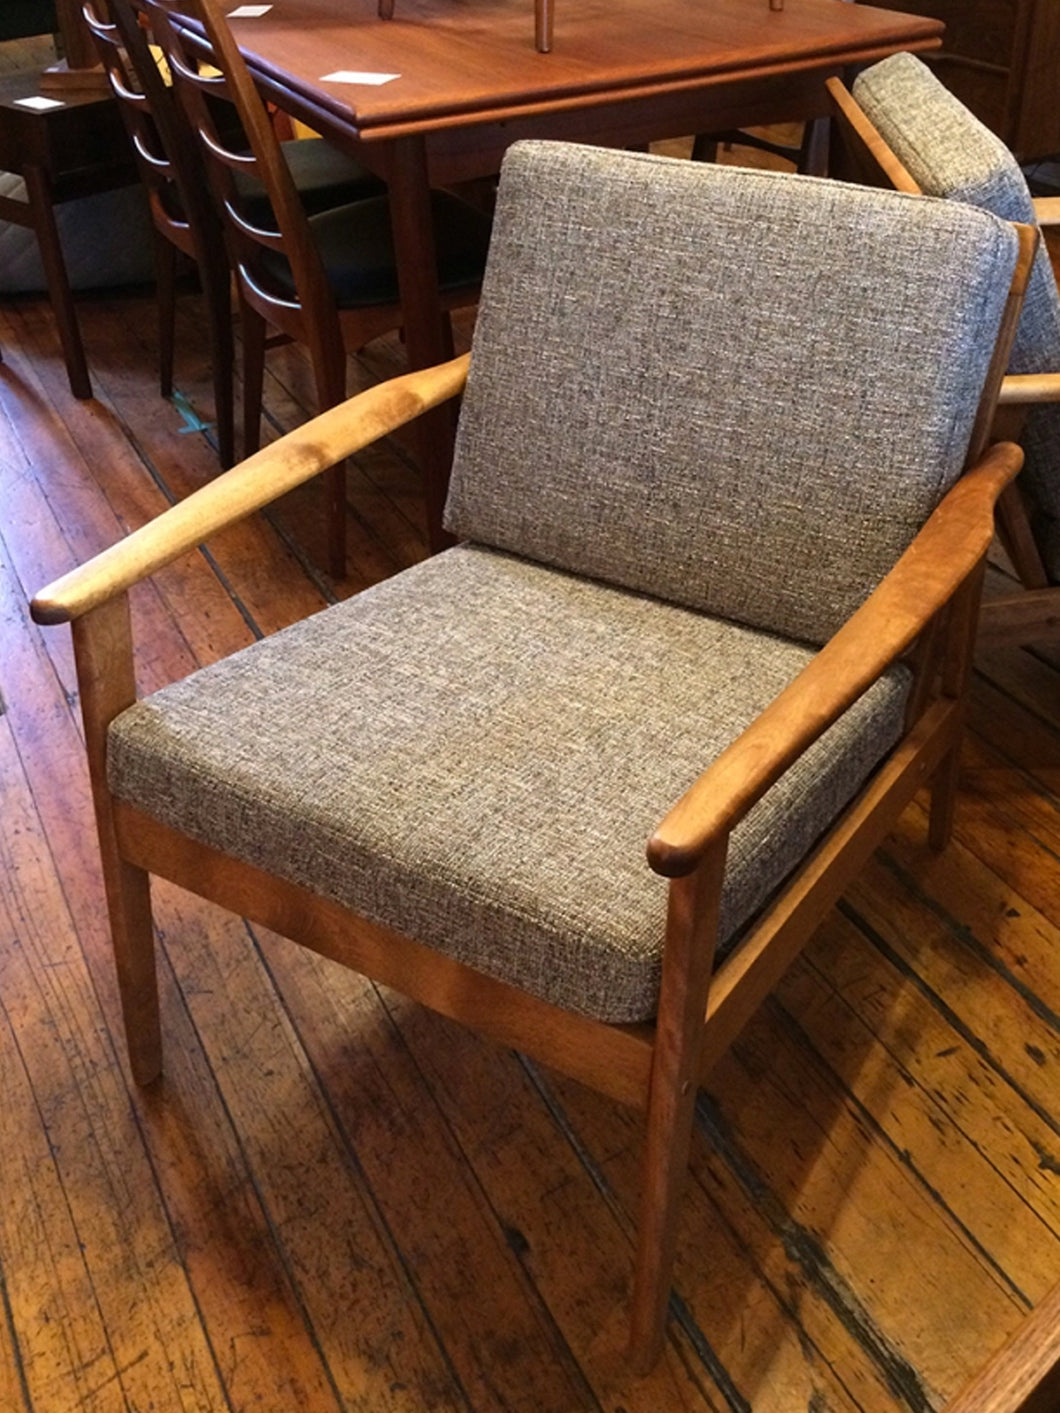 Pair of Birch Lounge Chairs: SOLD